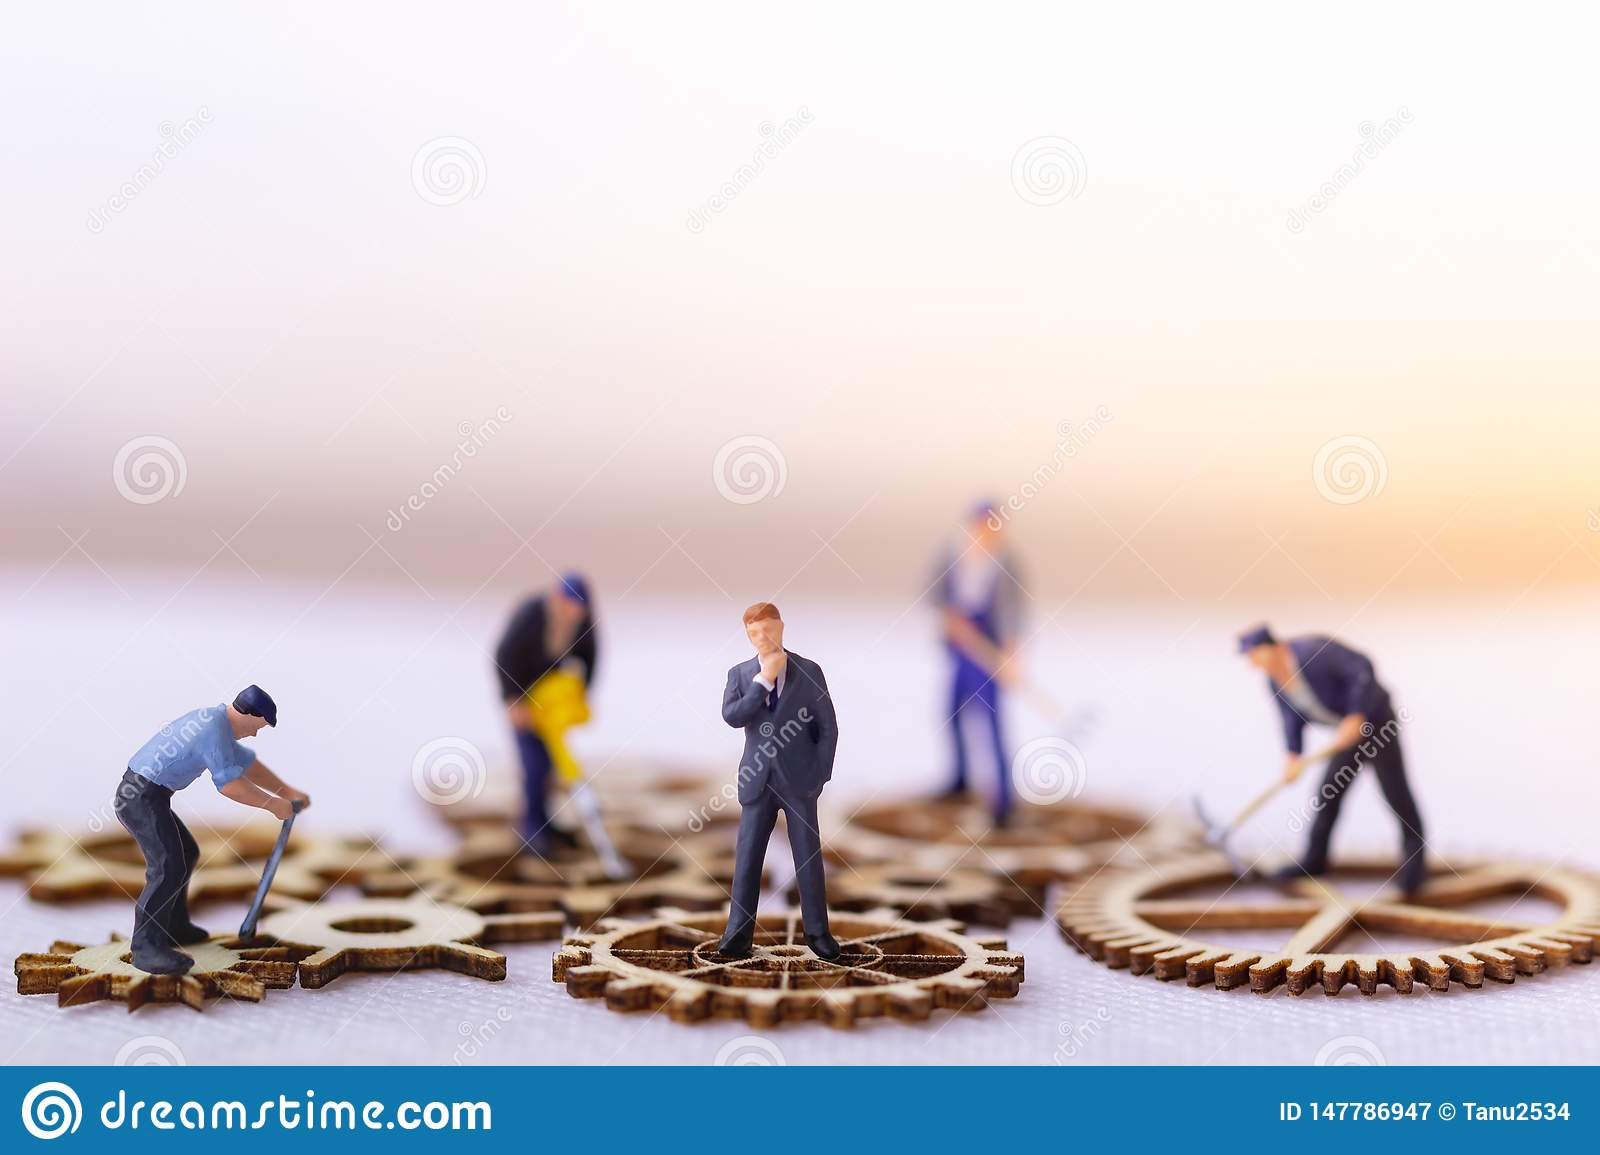 Businessman and many workers standing on wooden gear.